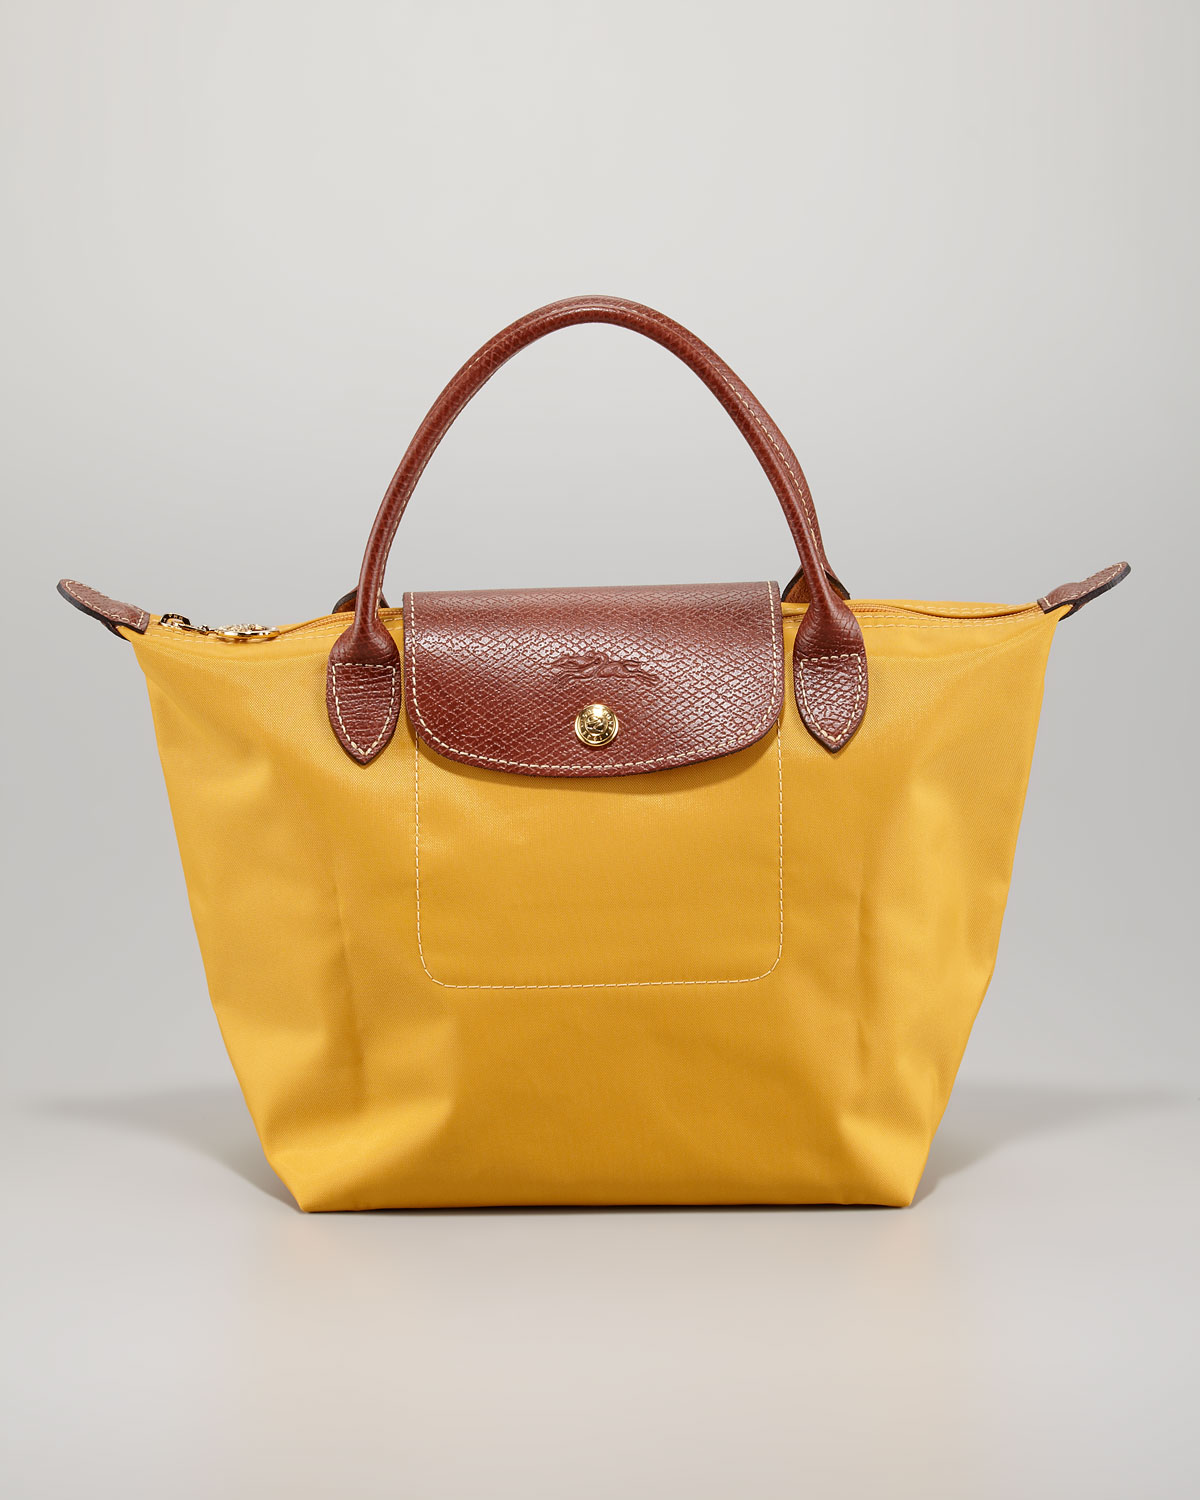 adde1cc71ec1 Lyst - Longchamp Le Pliage Cuir Small Leather Tote Bag in Yellow